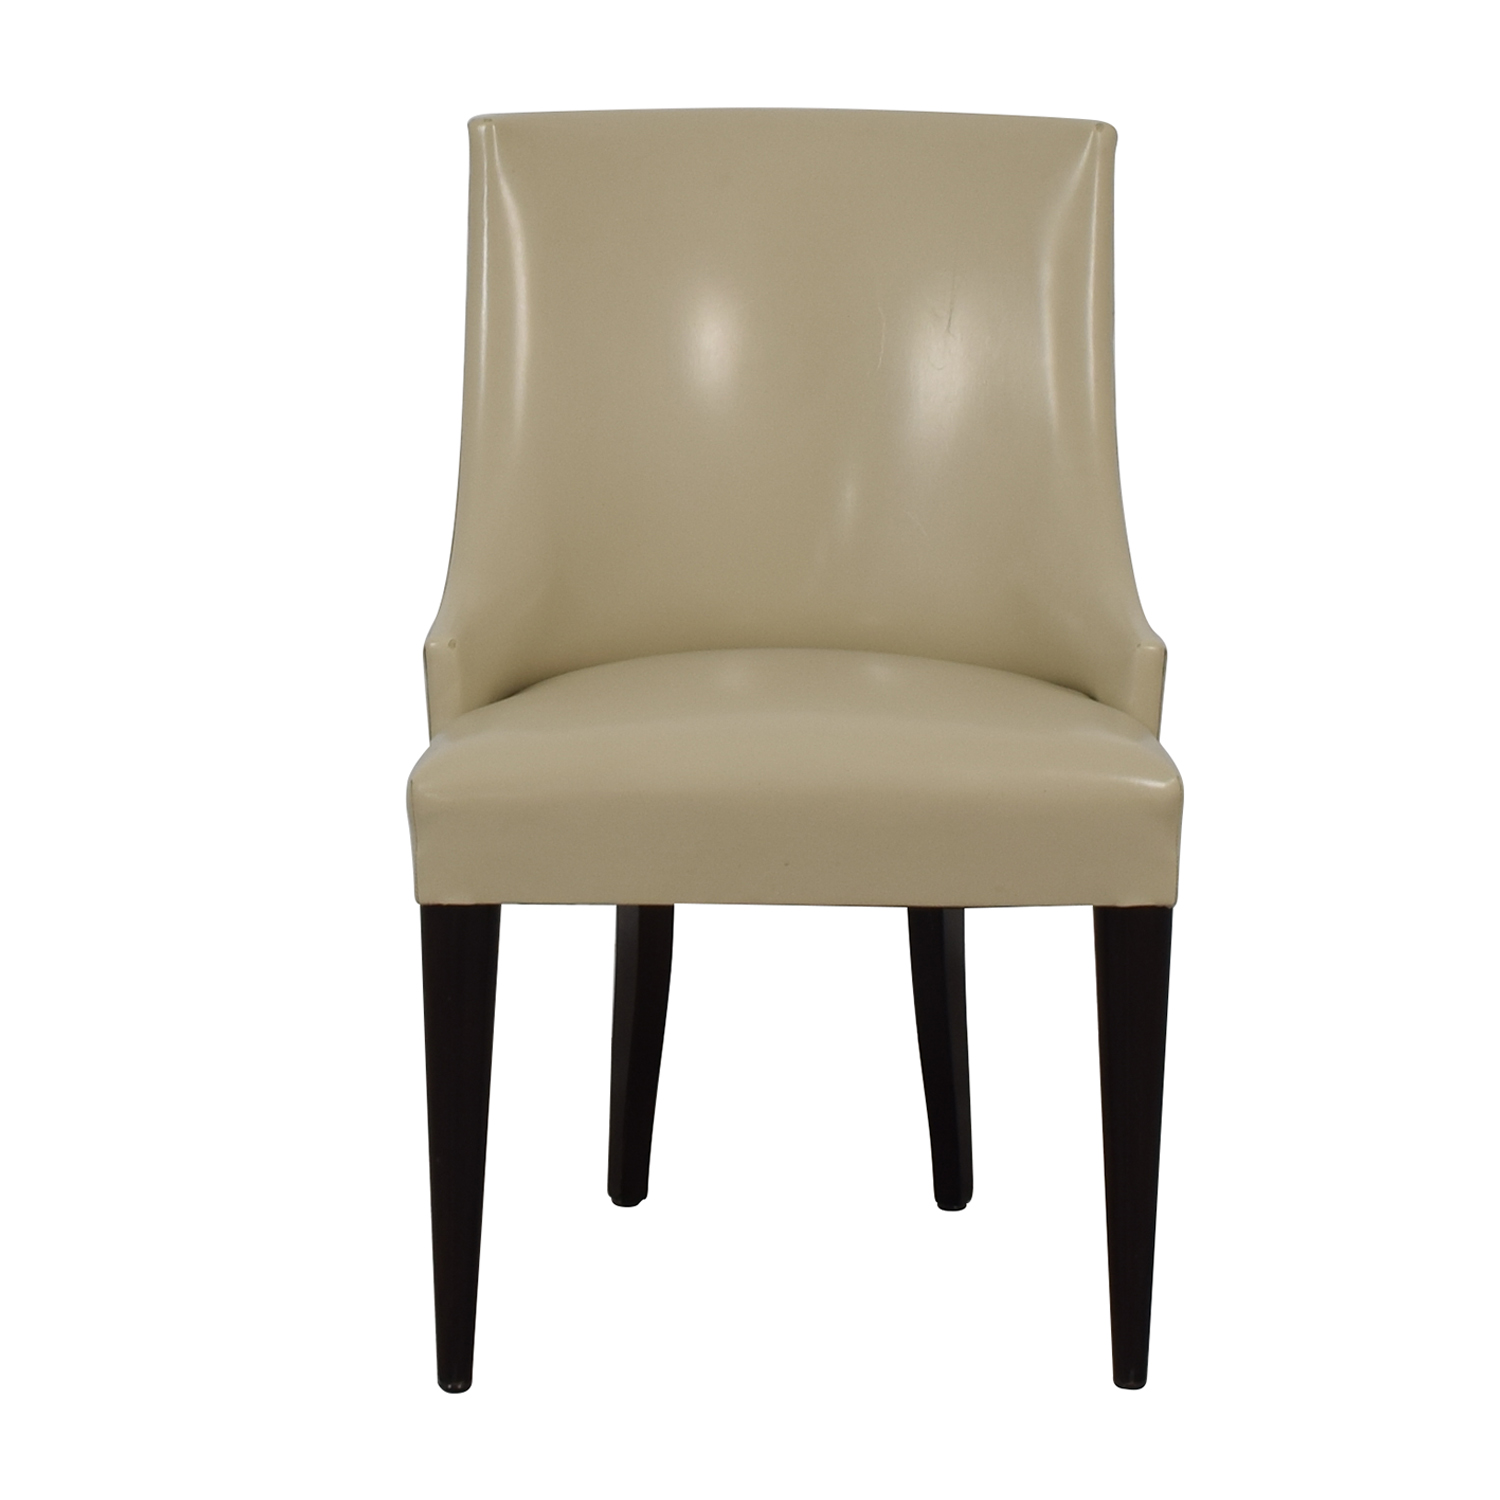 Furniture Masters White Accent Chair / Accent Chairs